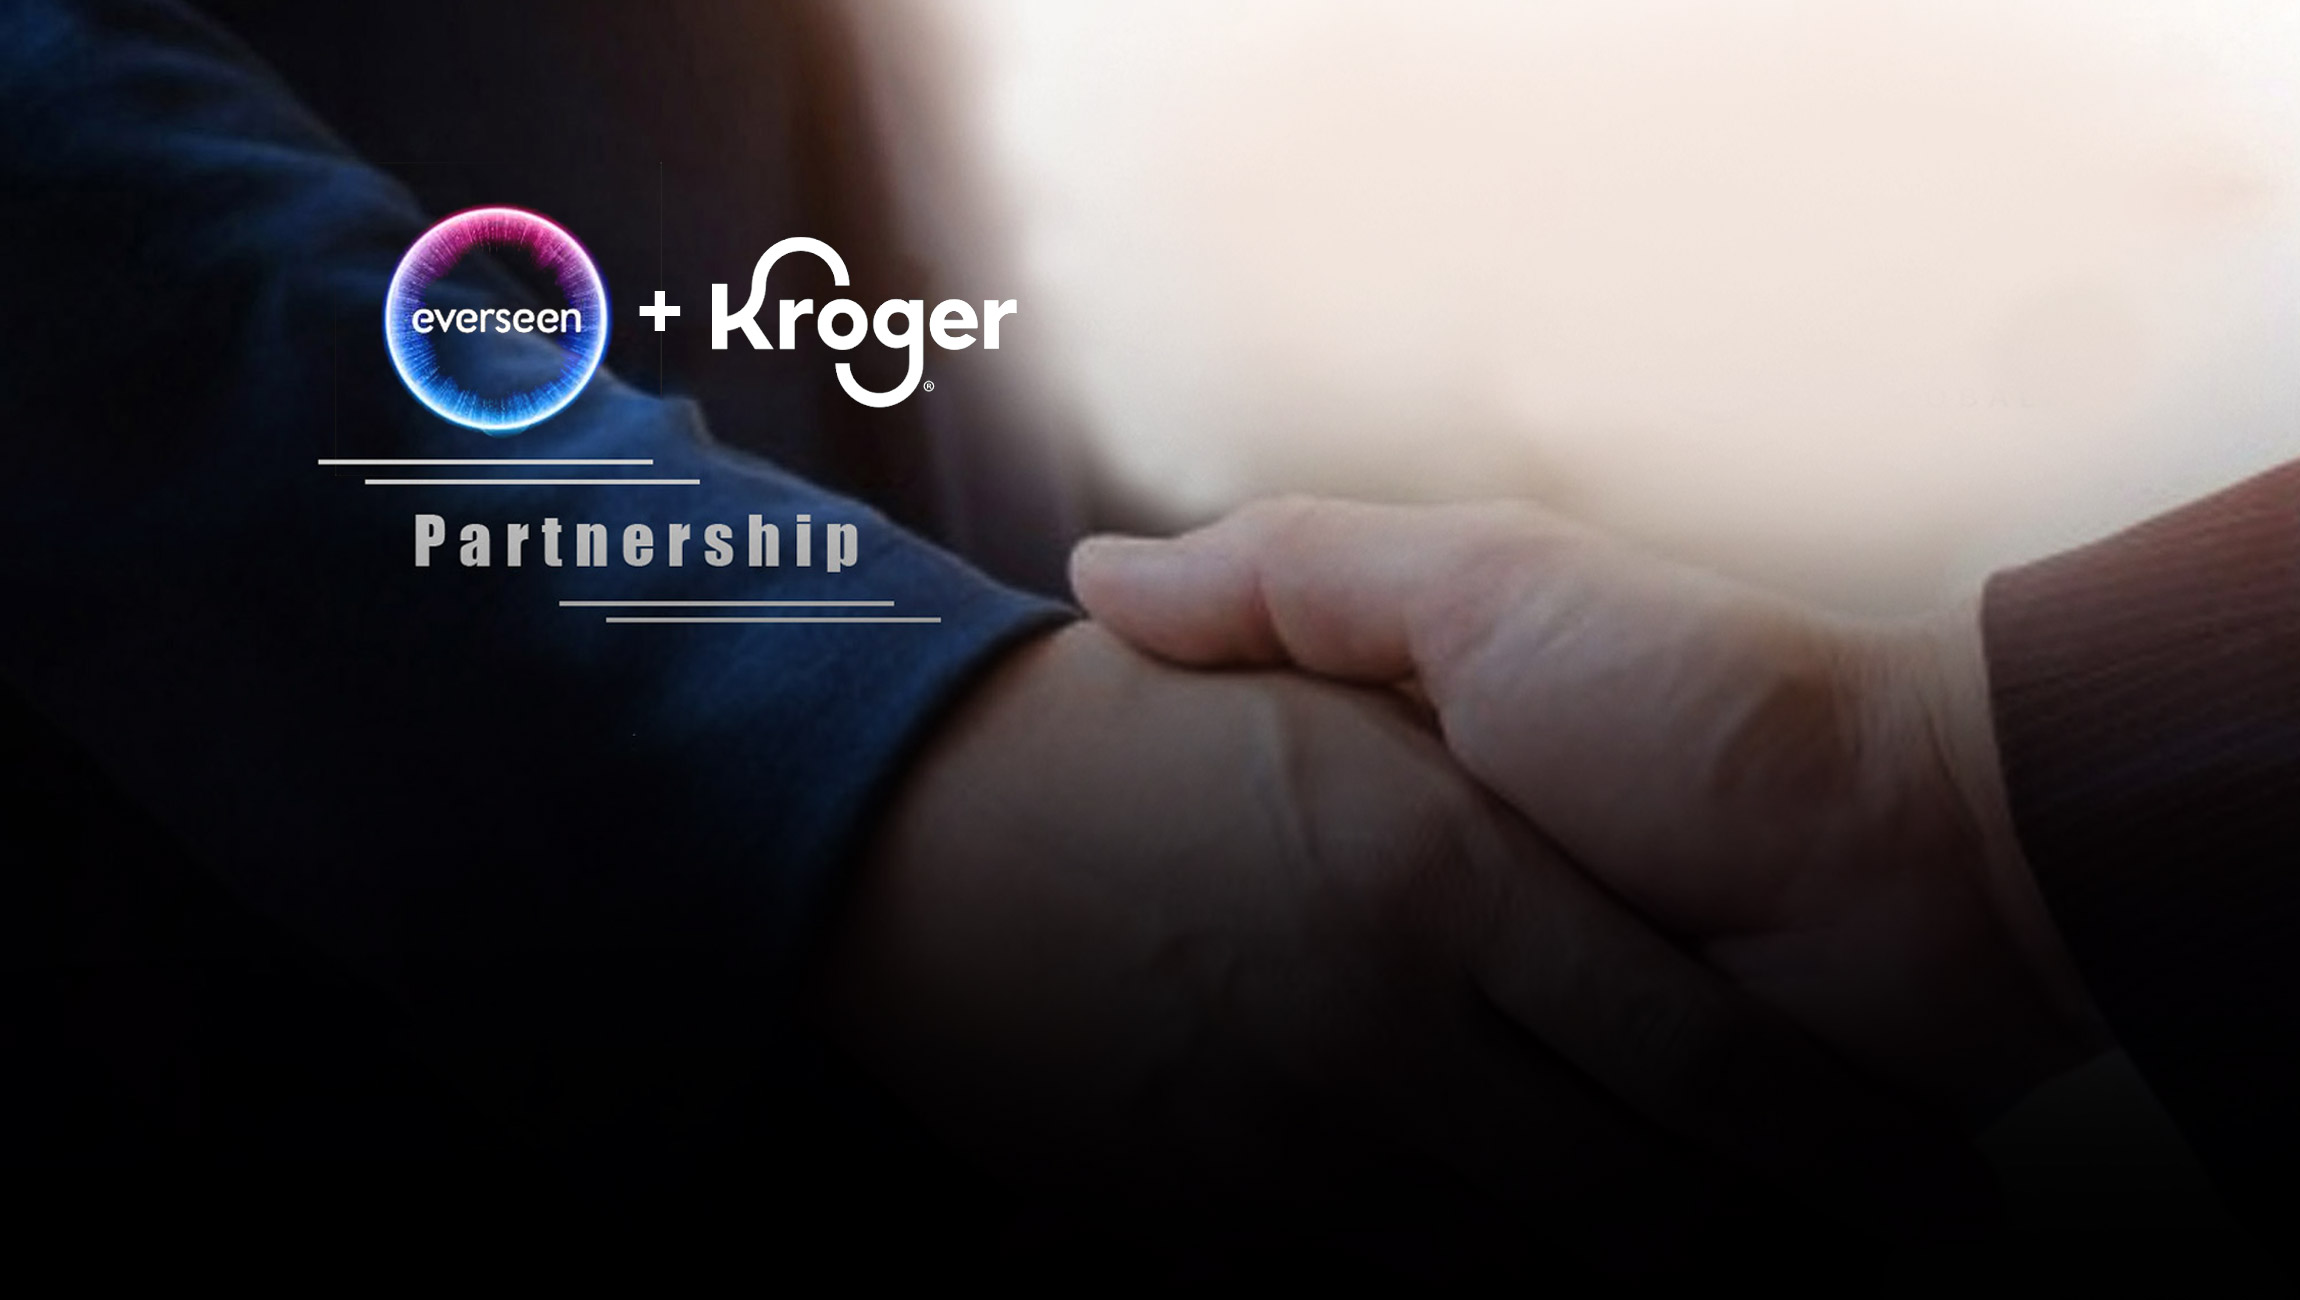 Everseen Forms New Technology Partnership with Kroger to Redefine the Customer Experience